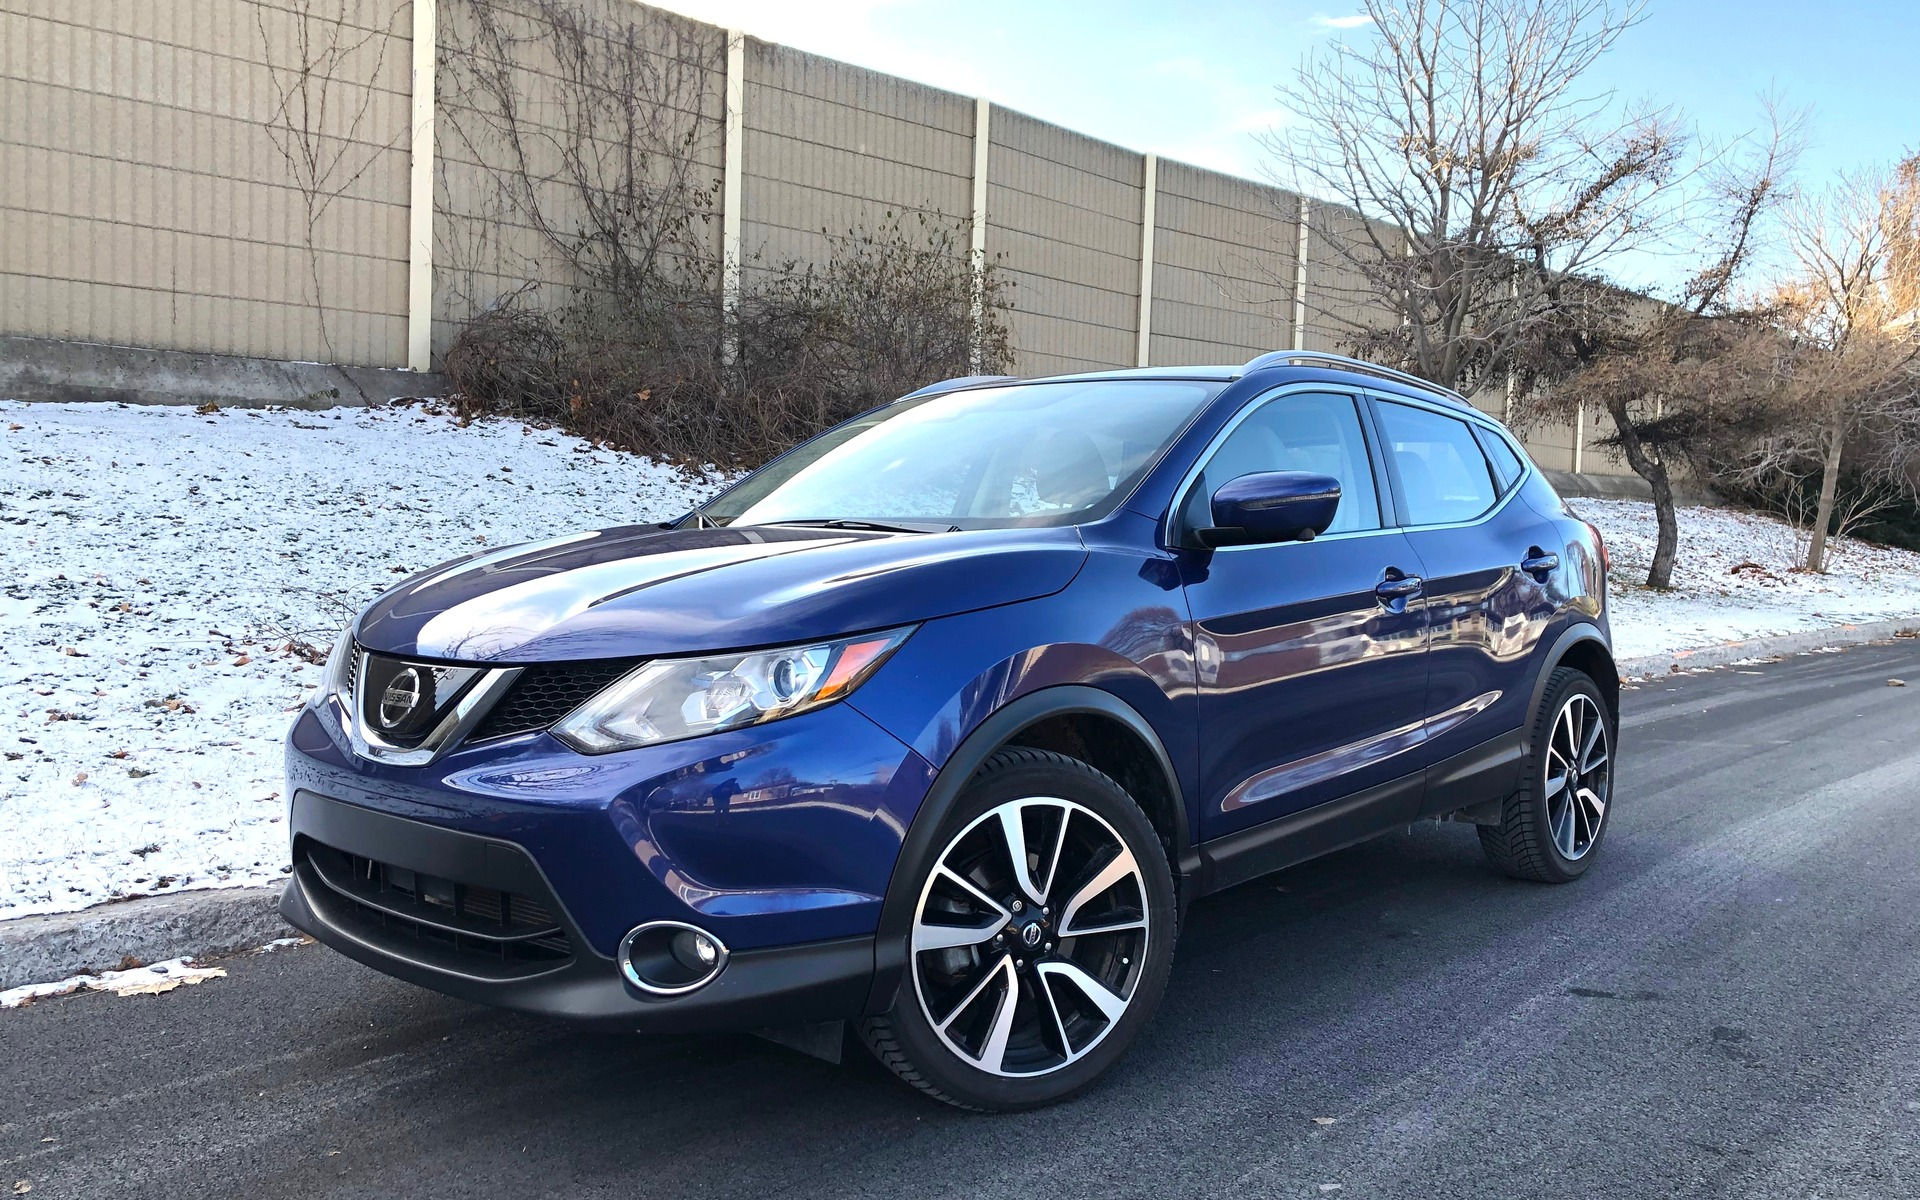 2020 Nissan Qashqai: Not the Bargain You Want - The Car Guide